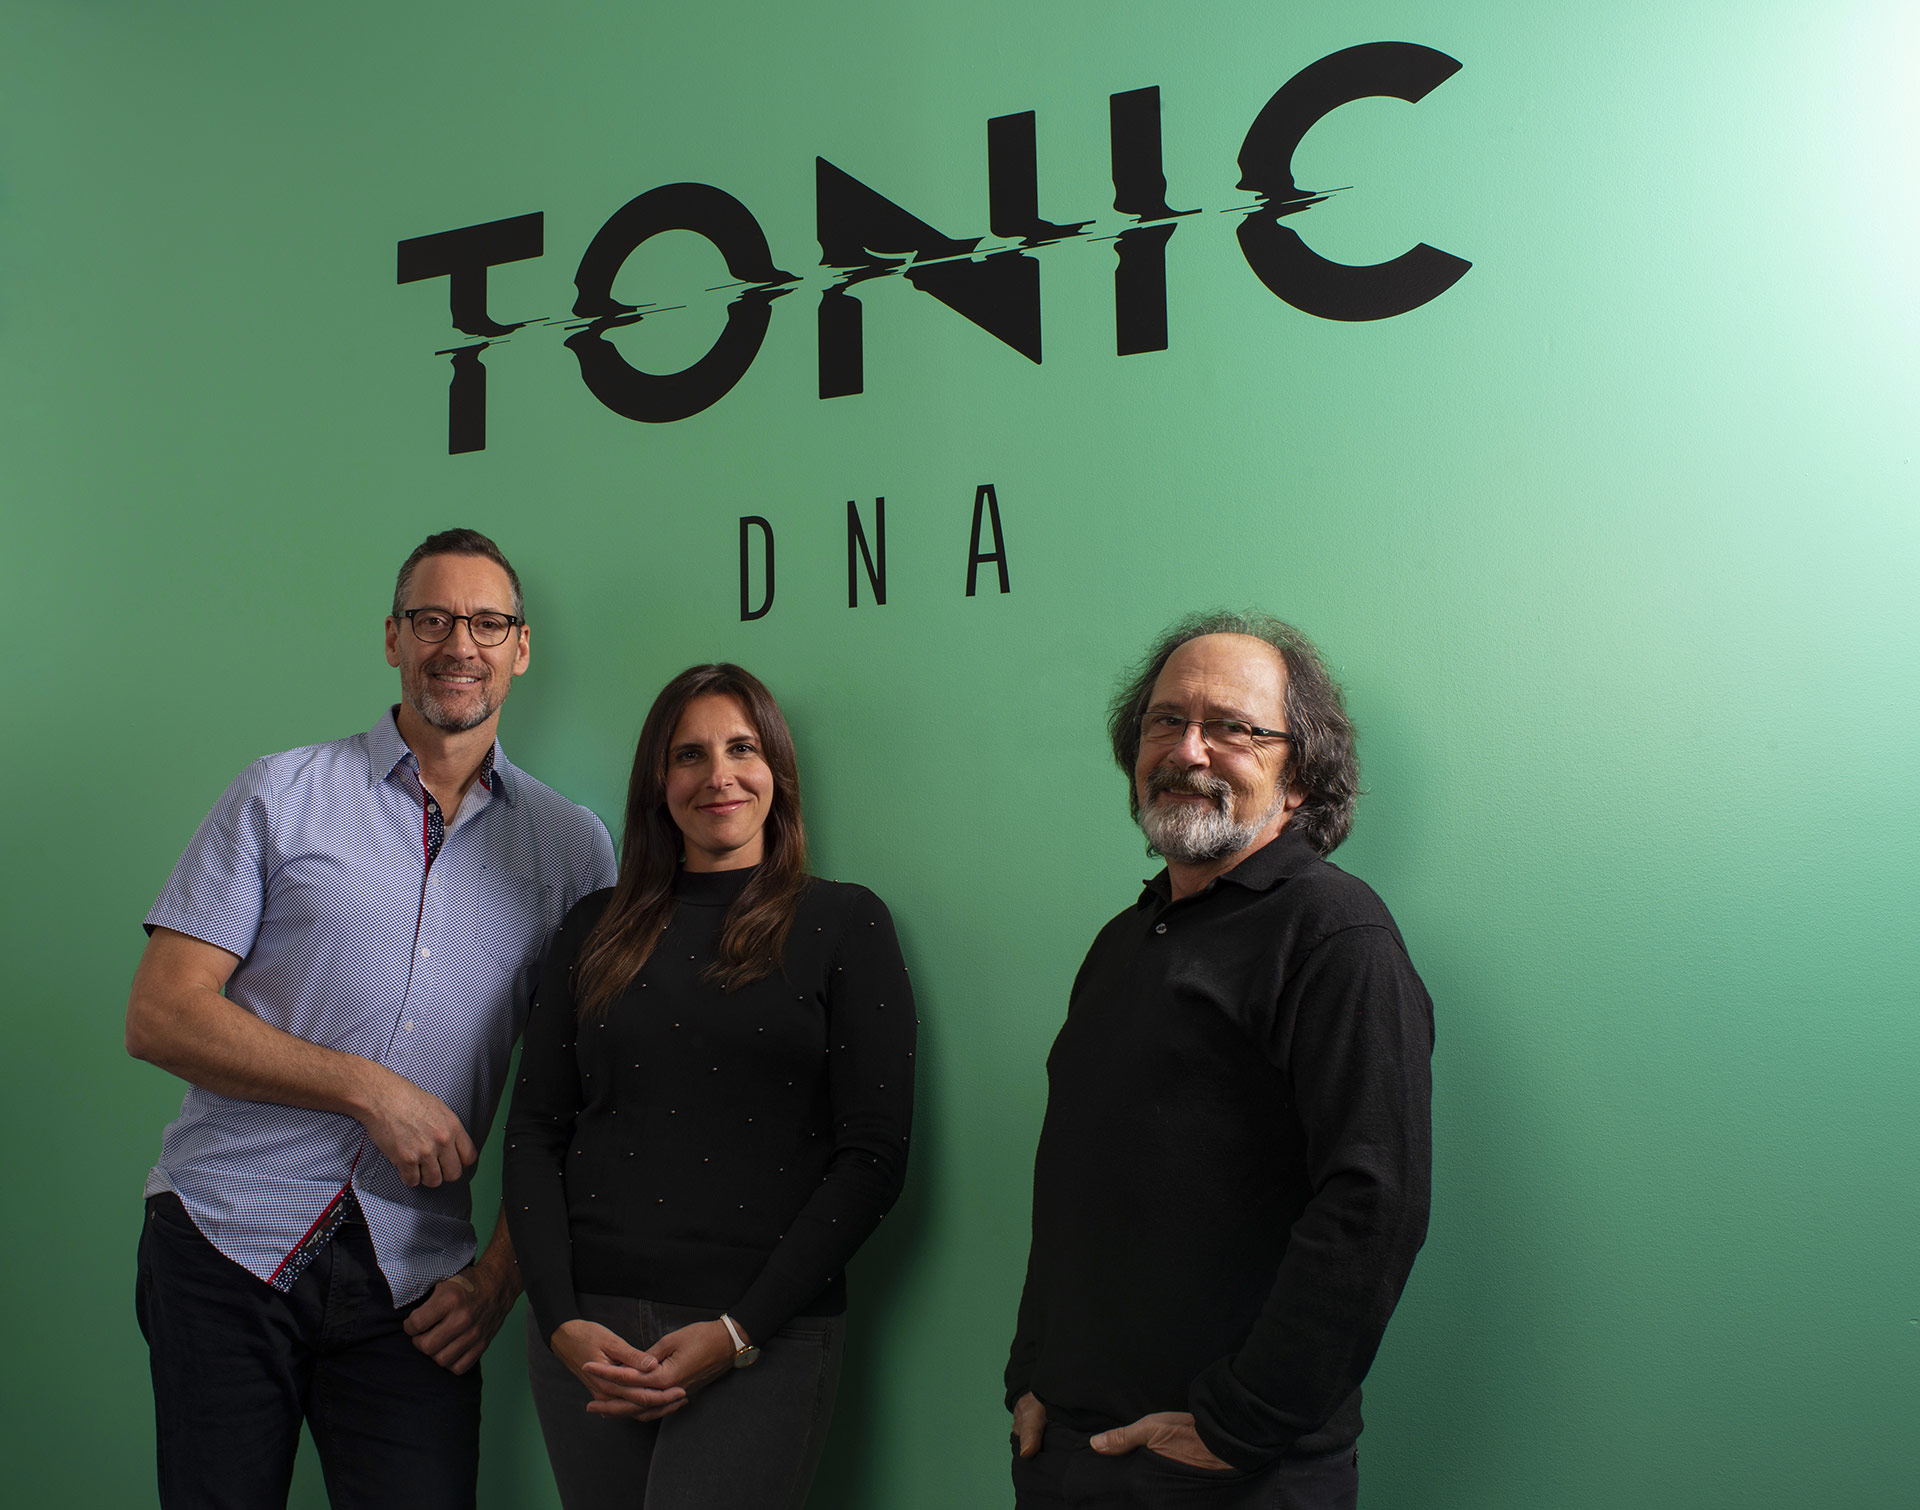 Tonic DNA principals (left to right) Howard Huxham, Stefanie Bitton, and Bernard Lajoie.